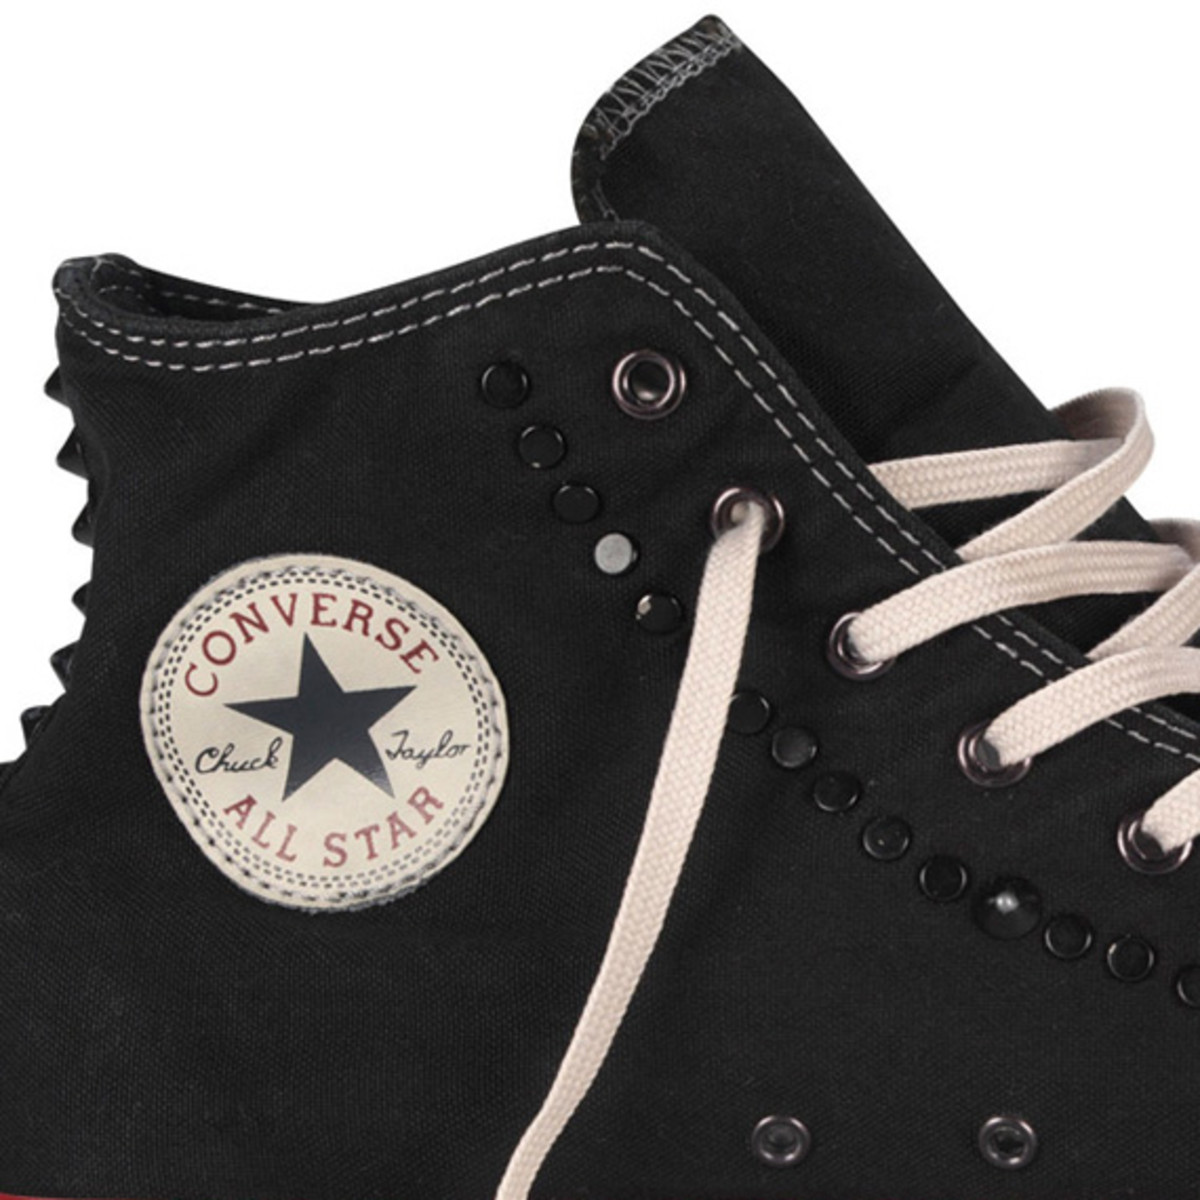 converse-chuck-taylor-all-star-collar-studs-fall-2013-collection-17